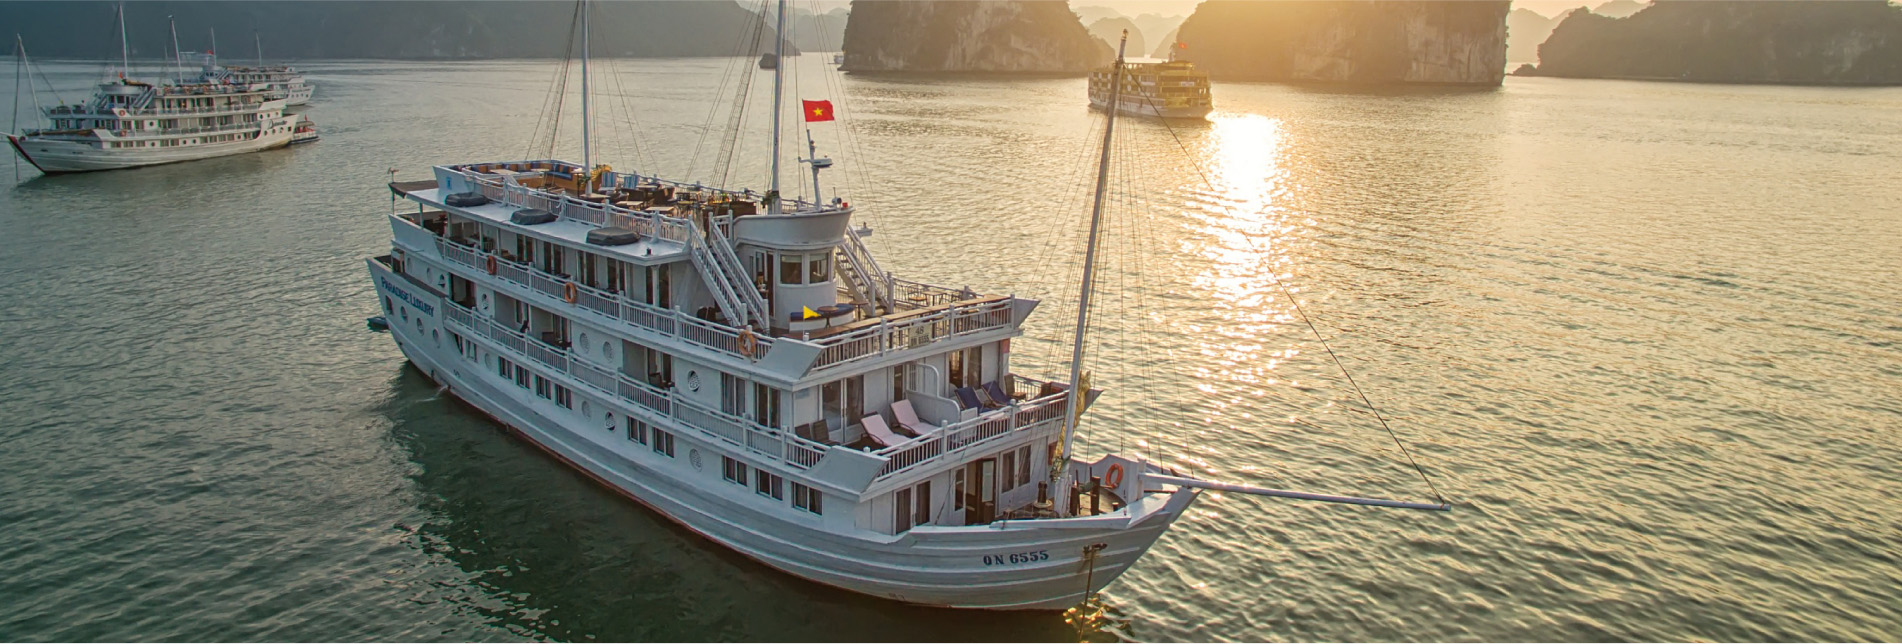 Halong private charter cruise